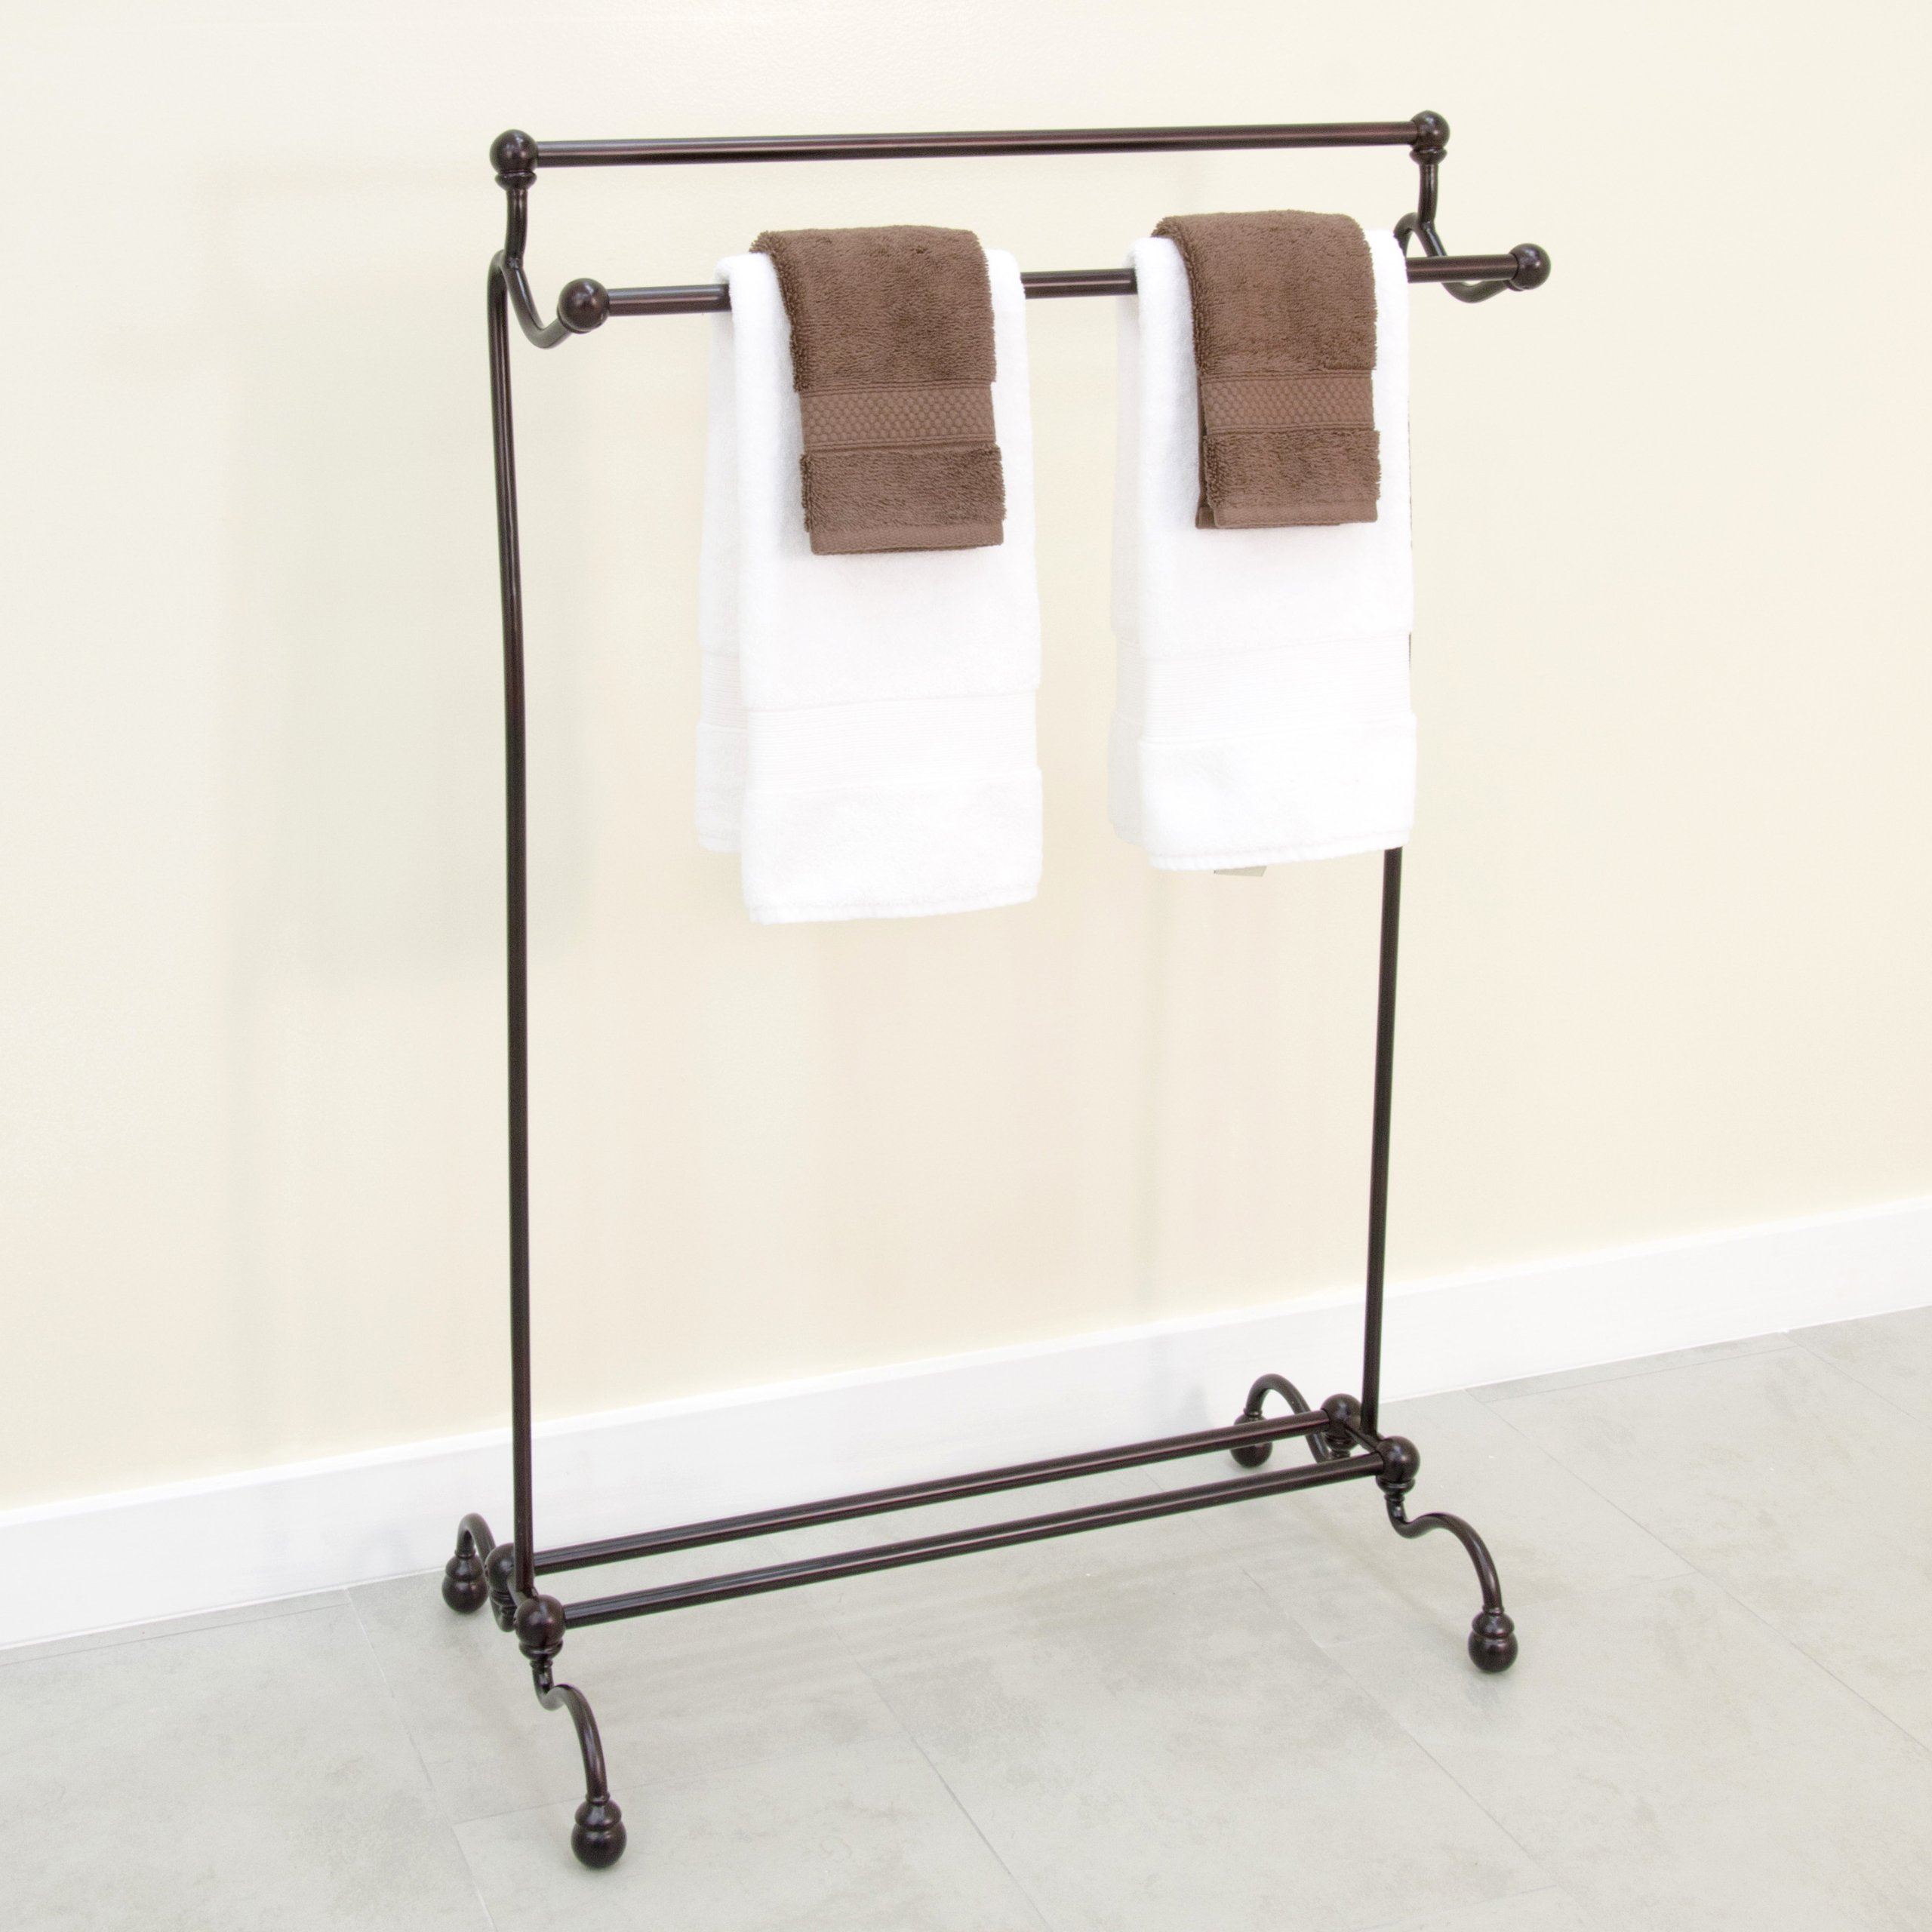 free standing towel rack for bathroom  home design ideas - towel rack bathroom racks stand standing part